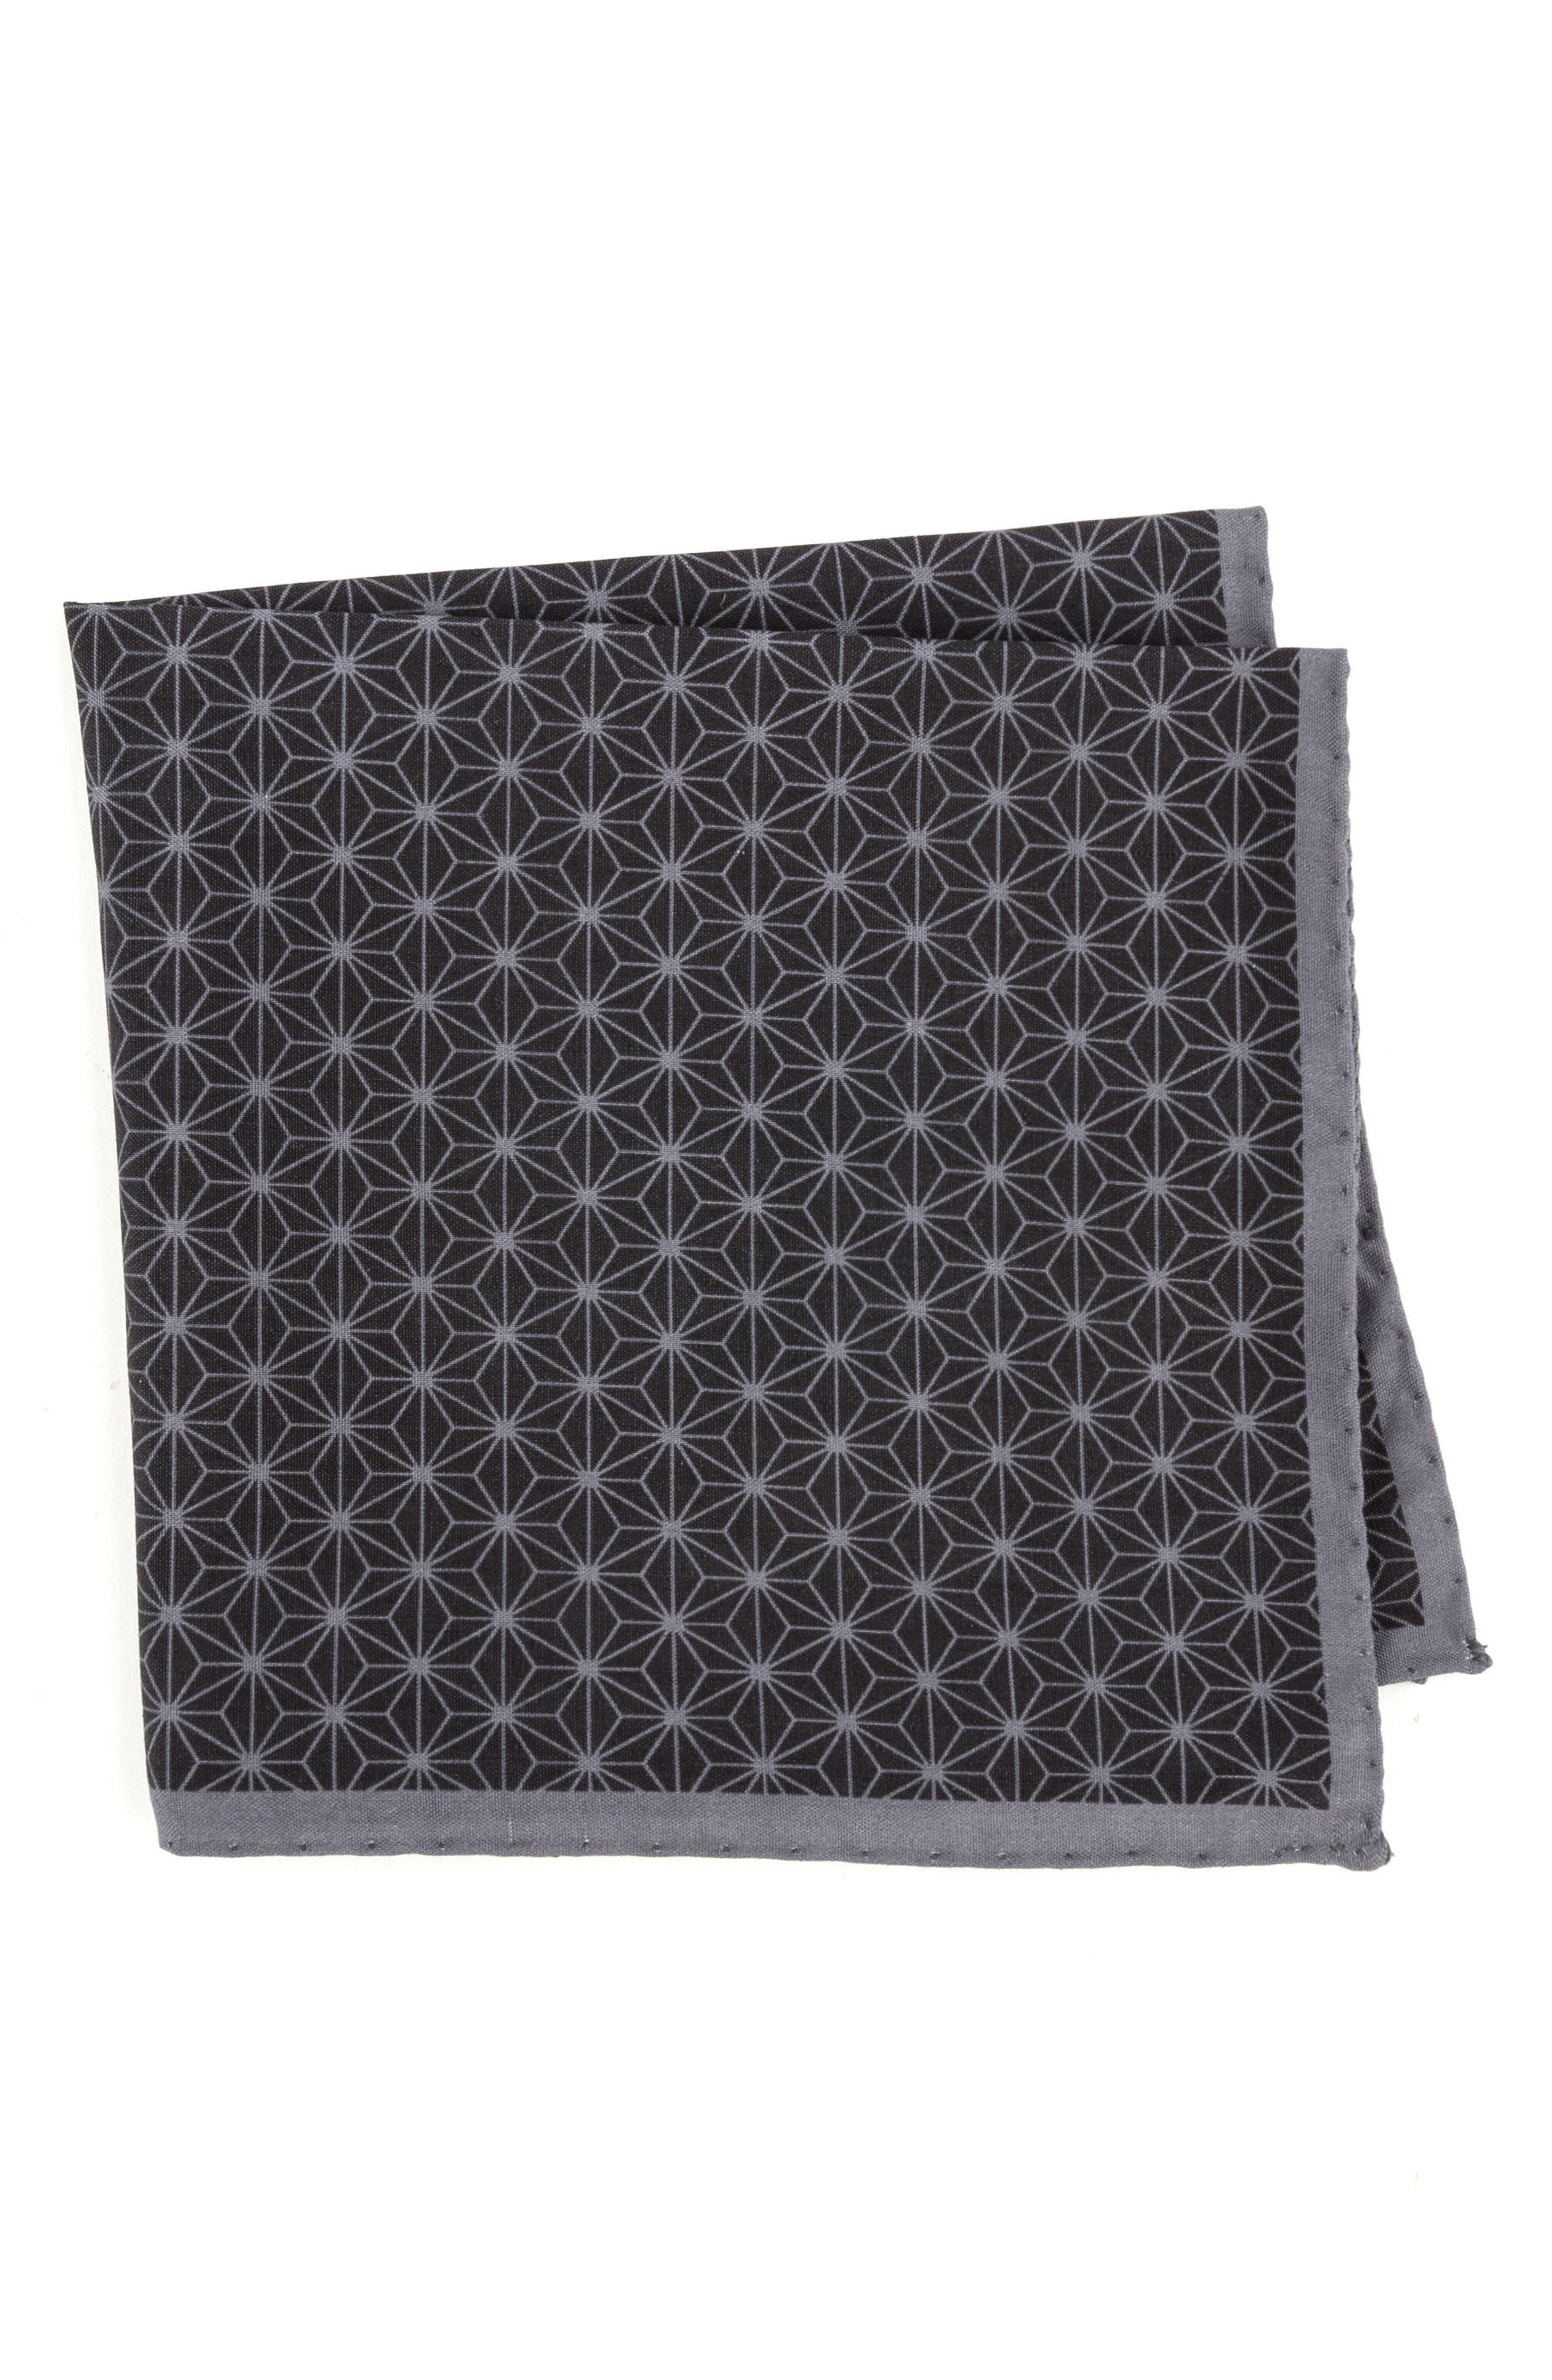 Starburst Geometric Silk Pocket Square,                             Main thumbnail 1, color,                             001